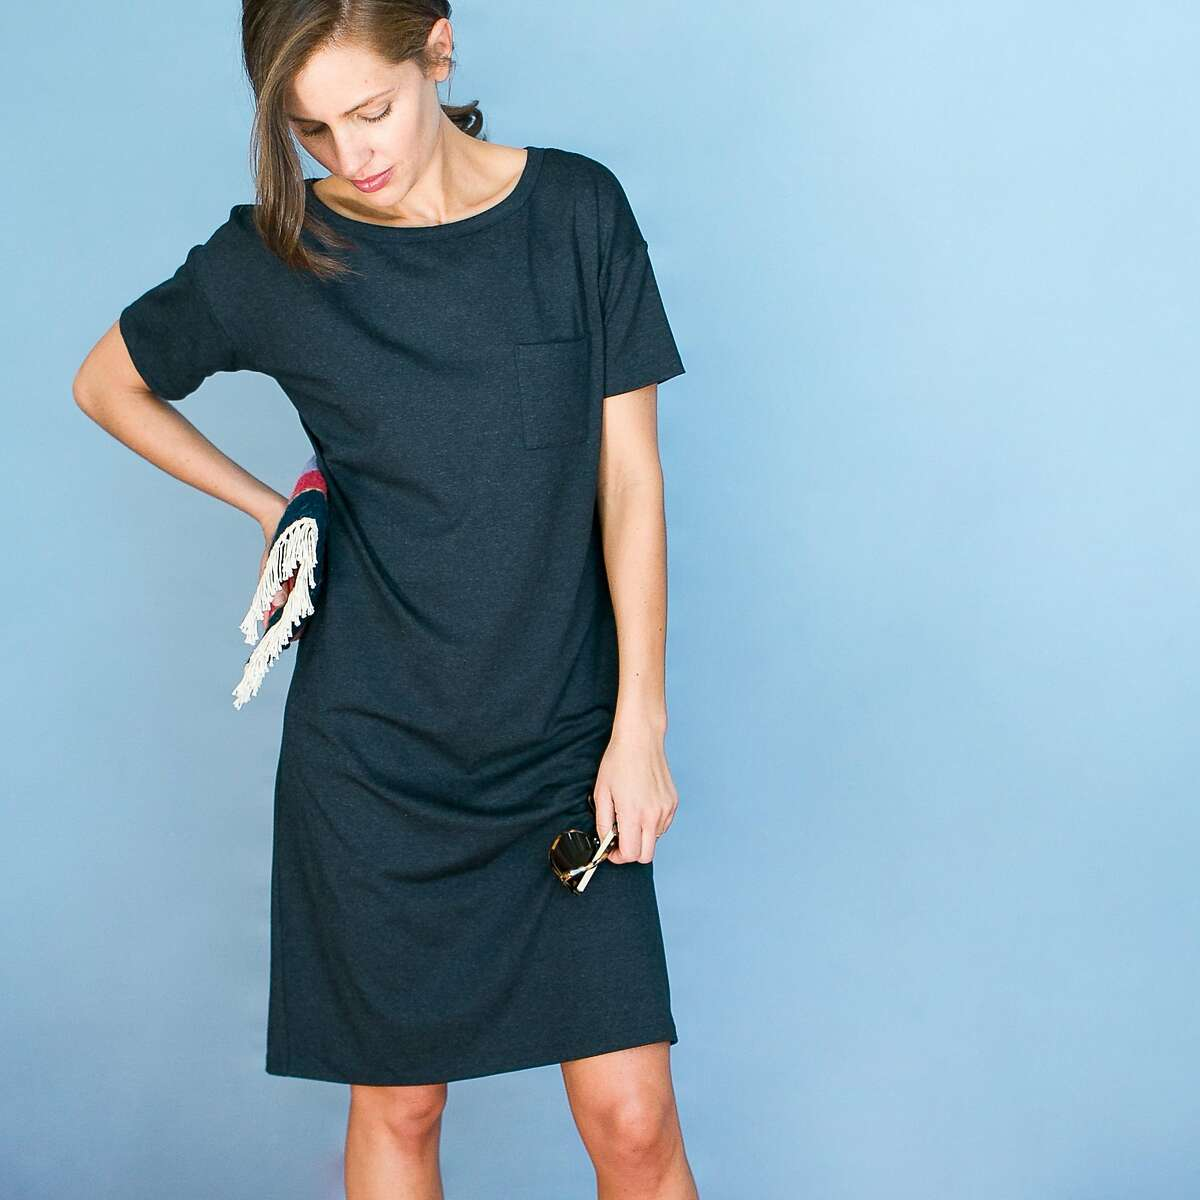 Sonnet James is a new line of dresses geared toward Millennial moms founded by Palo Alto mom�Whitney Lundeen.